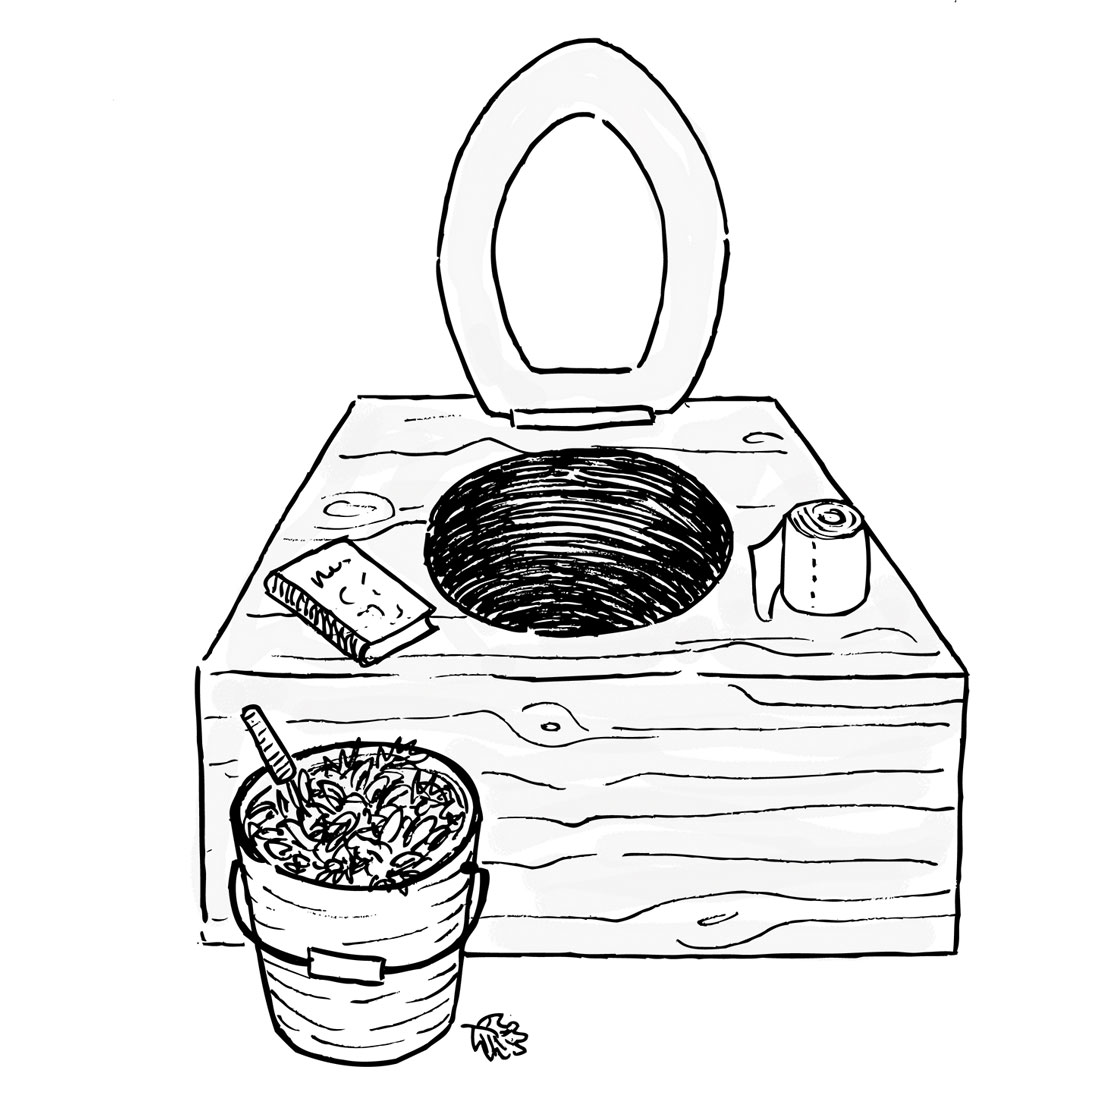 What do I need to know about composting toilets? Are they difficult to maintain?